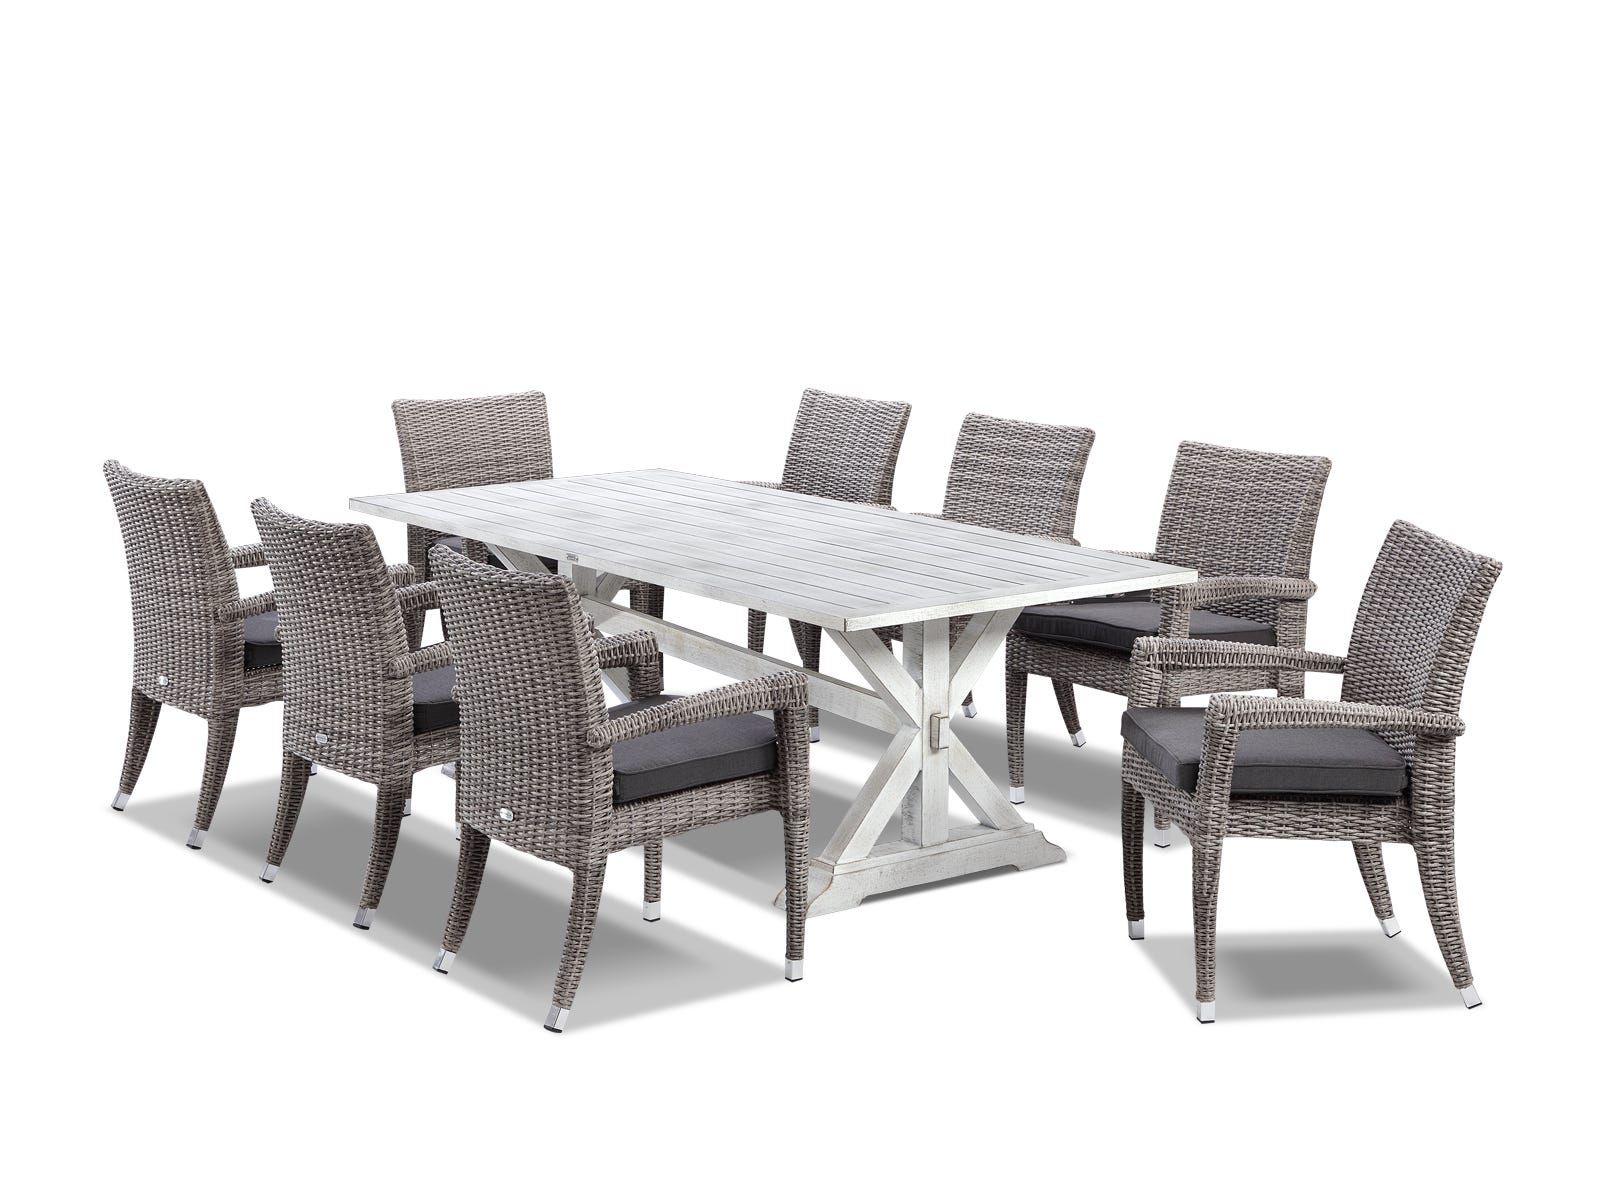 With The Look Of Weathered Timber But The Performance And Low Maintenance  Benefits Of Aluminium These Tables Really Deliver The Ideal Outdoor ...